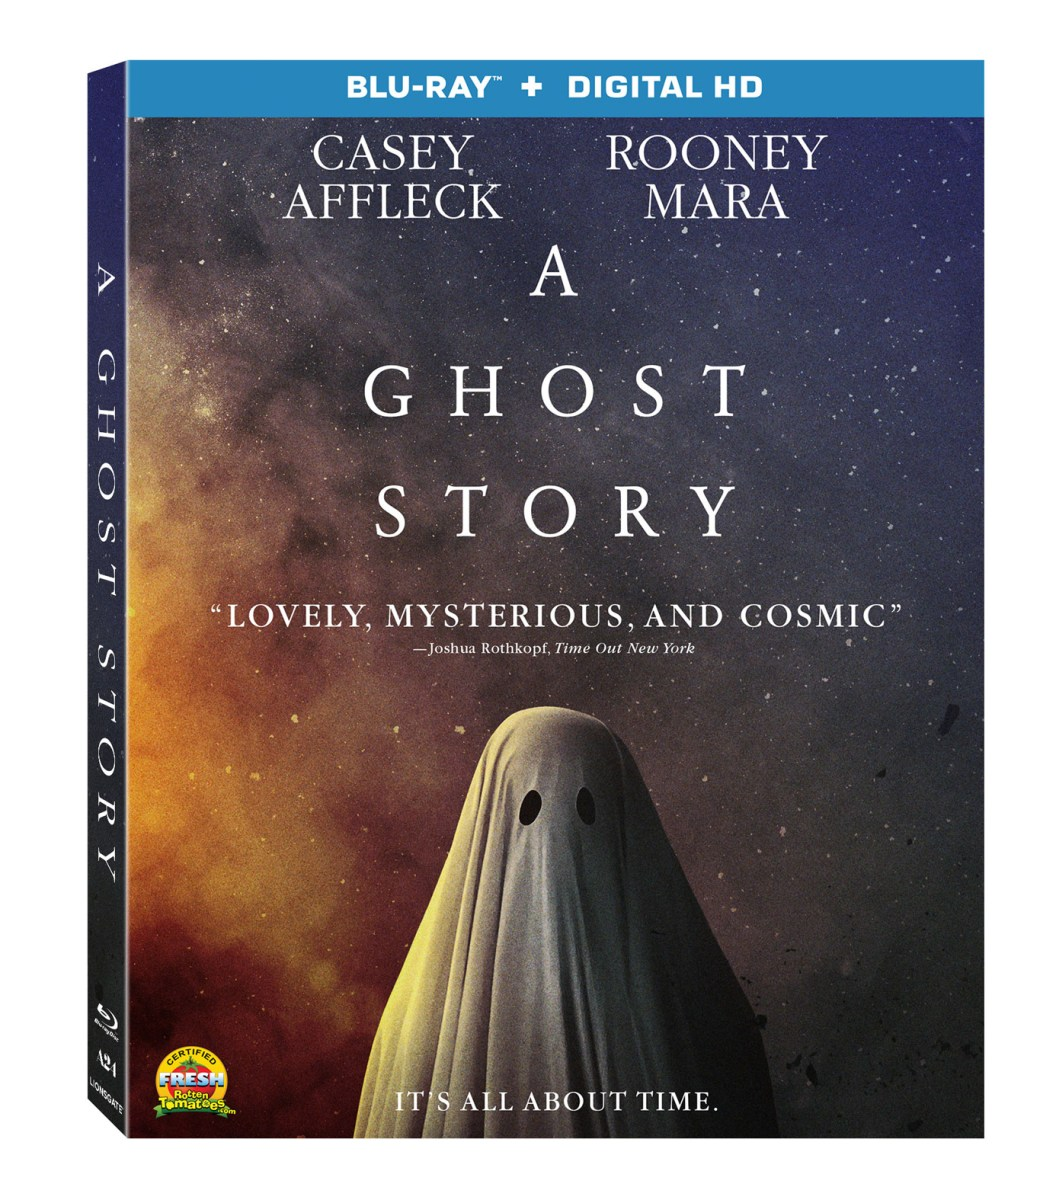 A Ghost Story Home Release Info Announced By Lionsgate Home Entertainment